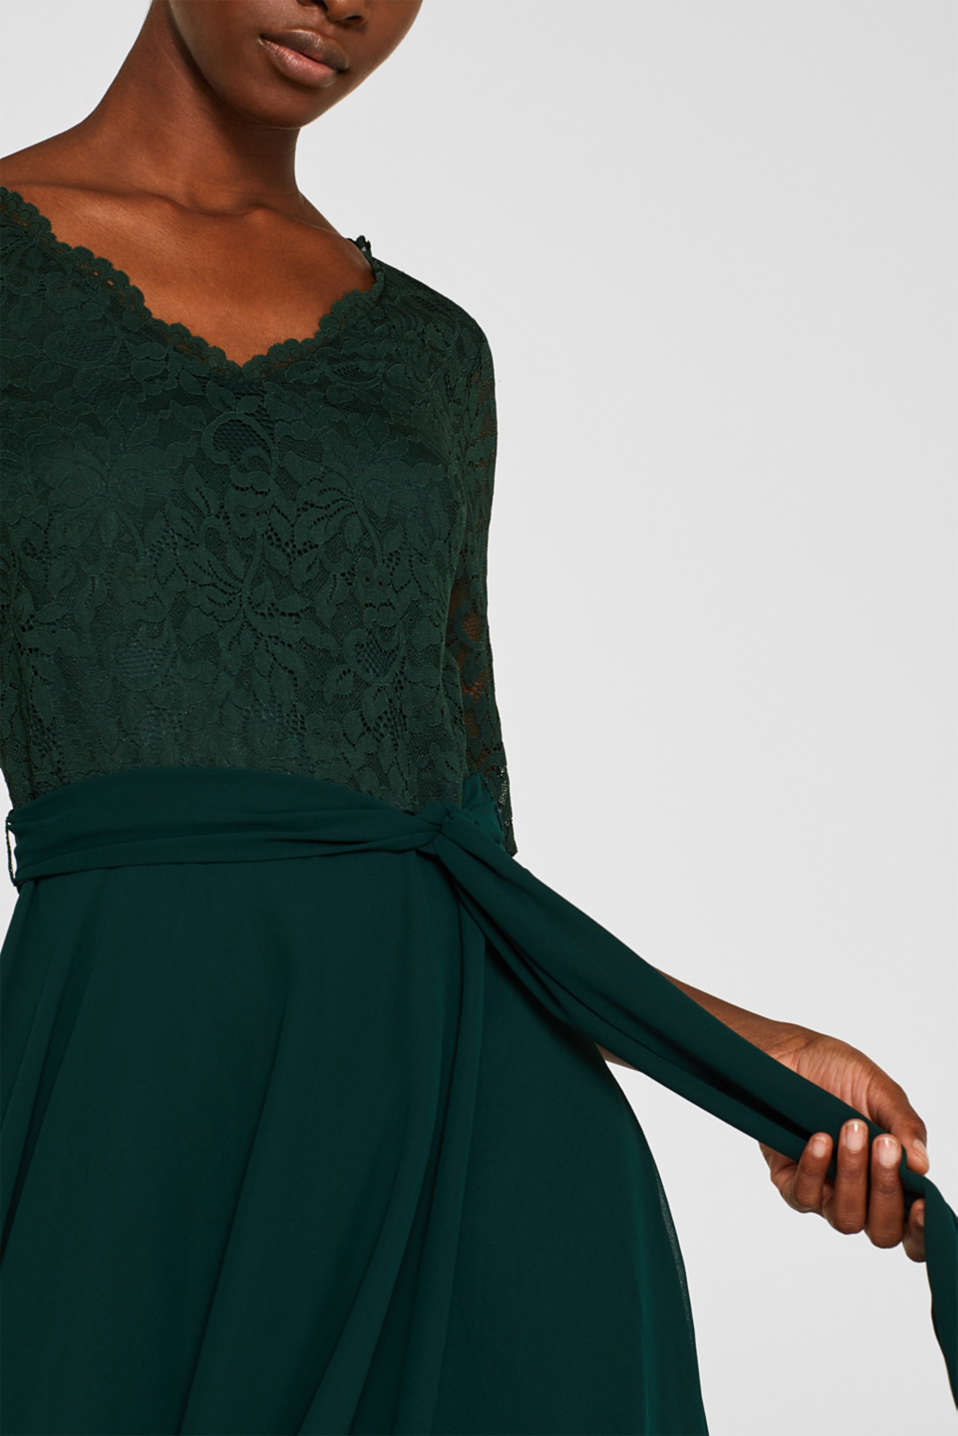 Dress made of lace and chiffon, DARK TEAL GREEN, detail image number 3